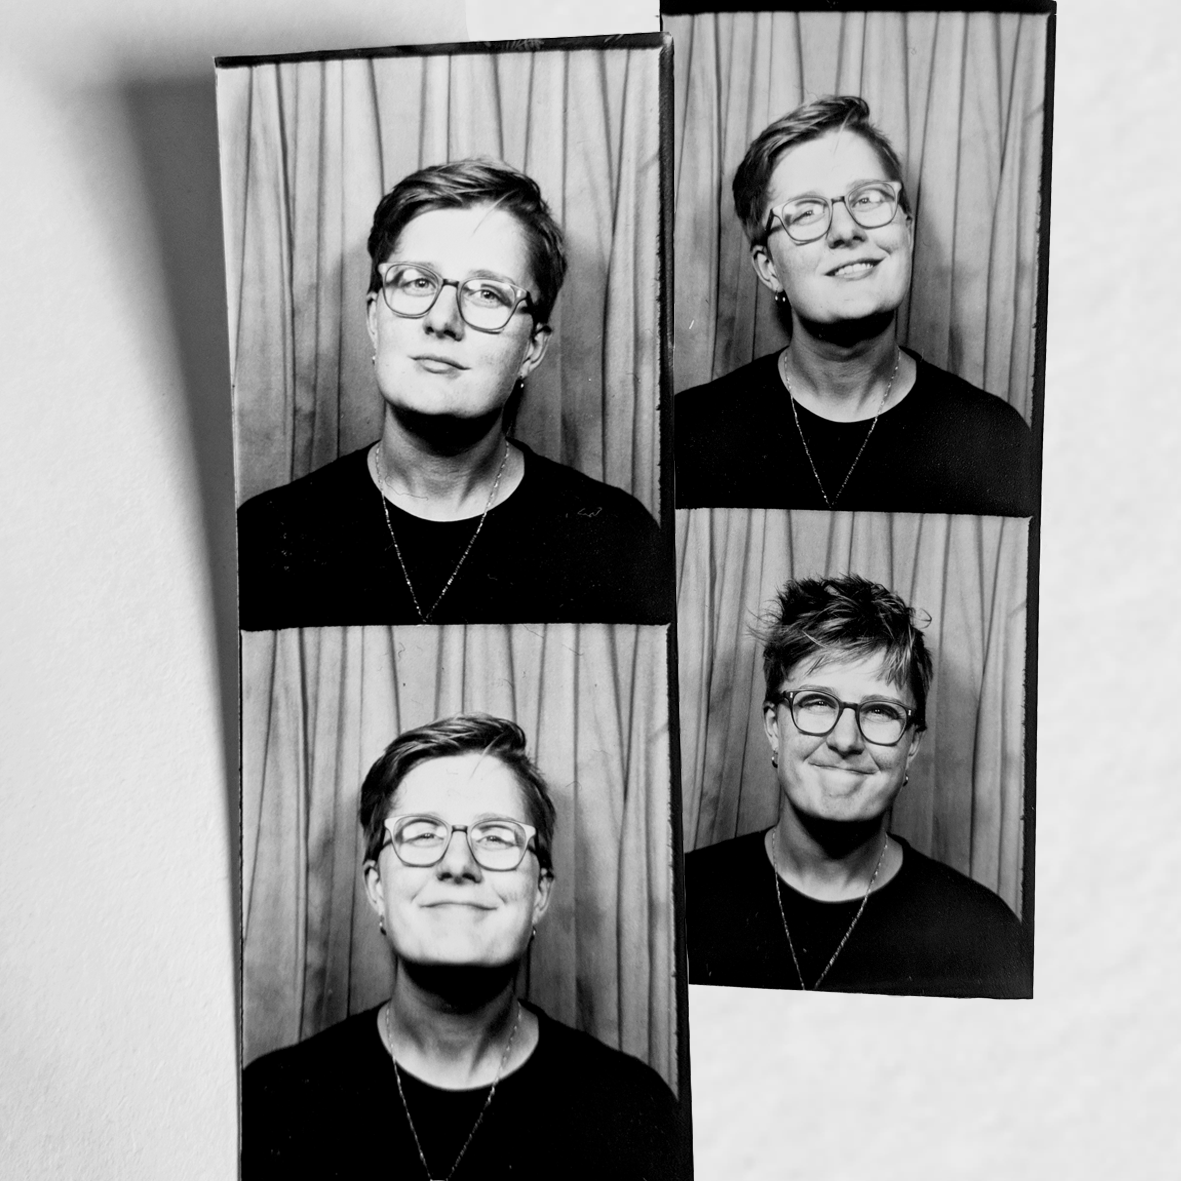 black and white photos of Edi smiling alone, taken in a photobooth